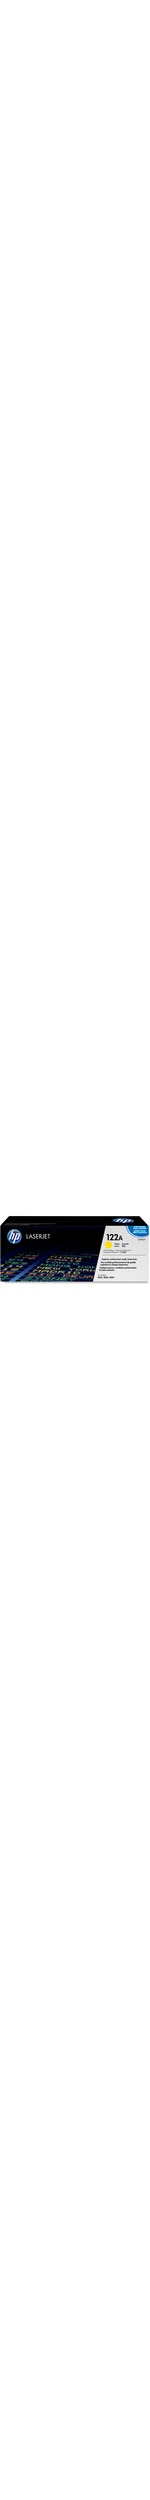 HP 122A Toner Cartridge - Yellow - Laser - 4000 Page Colour - 1 Each